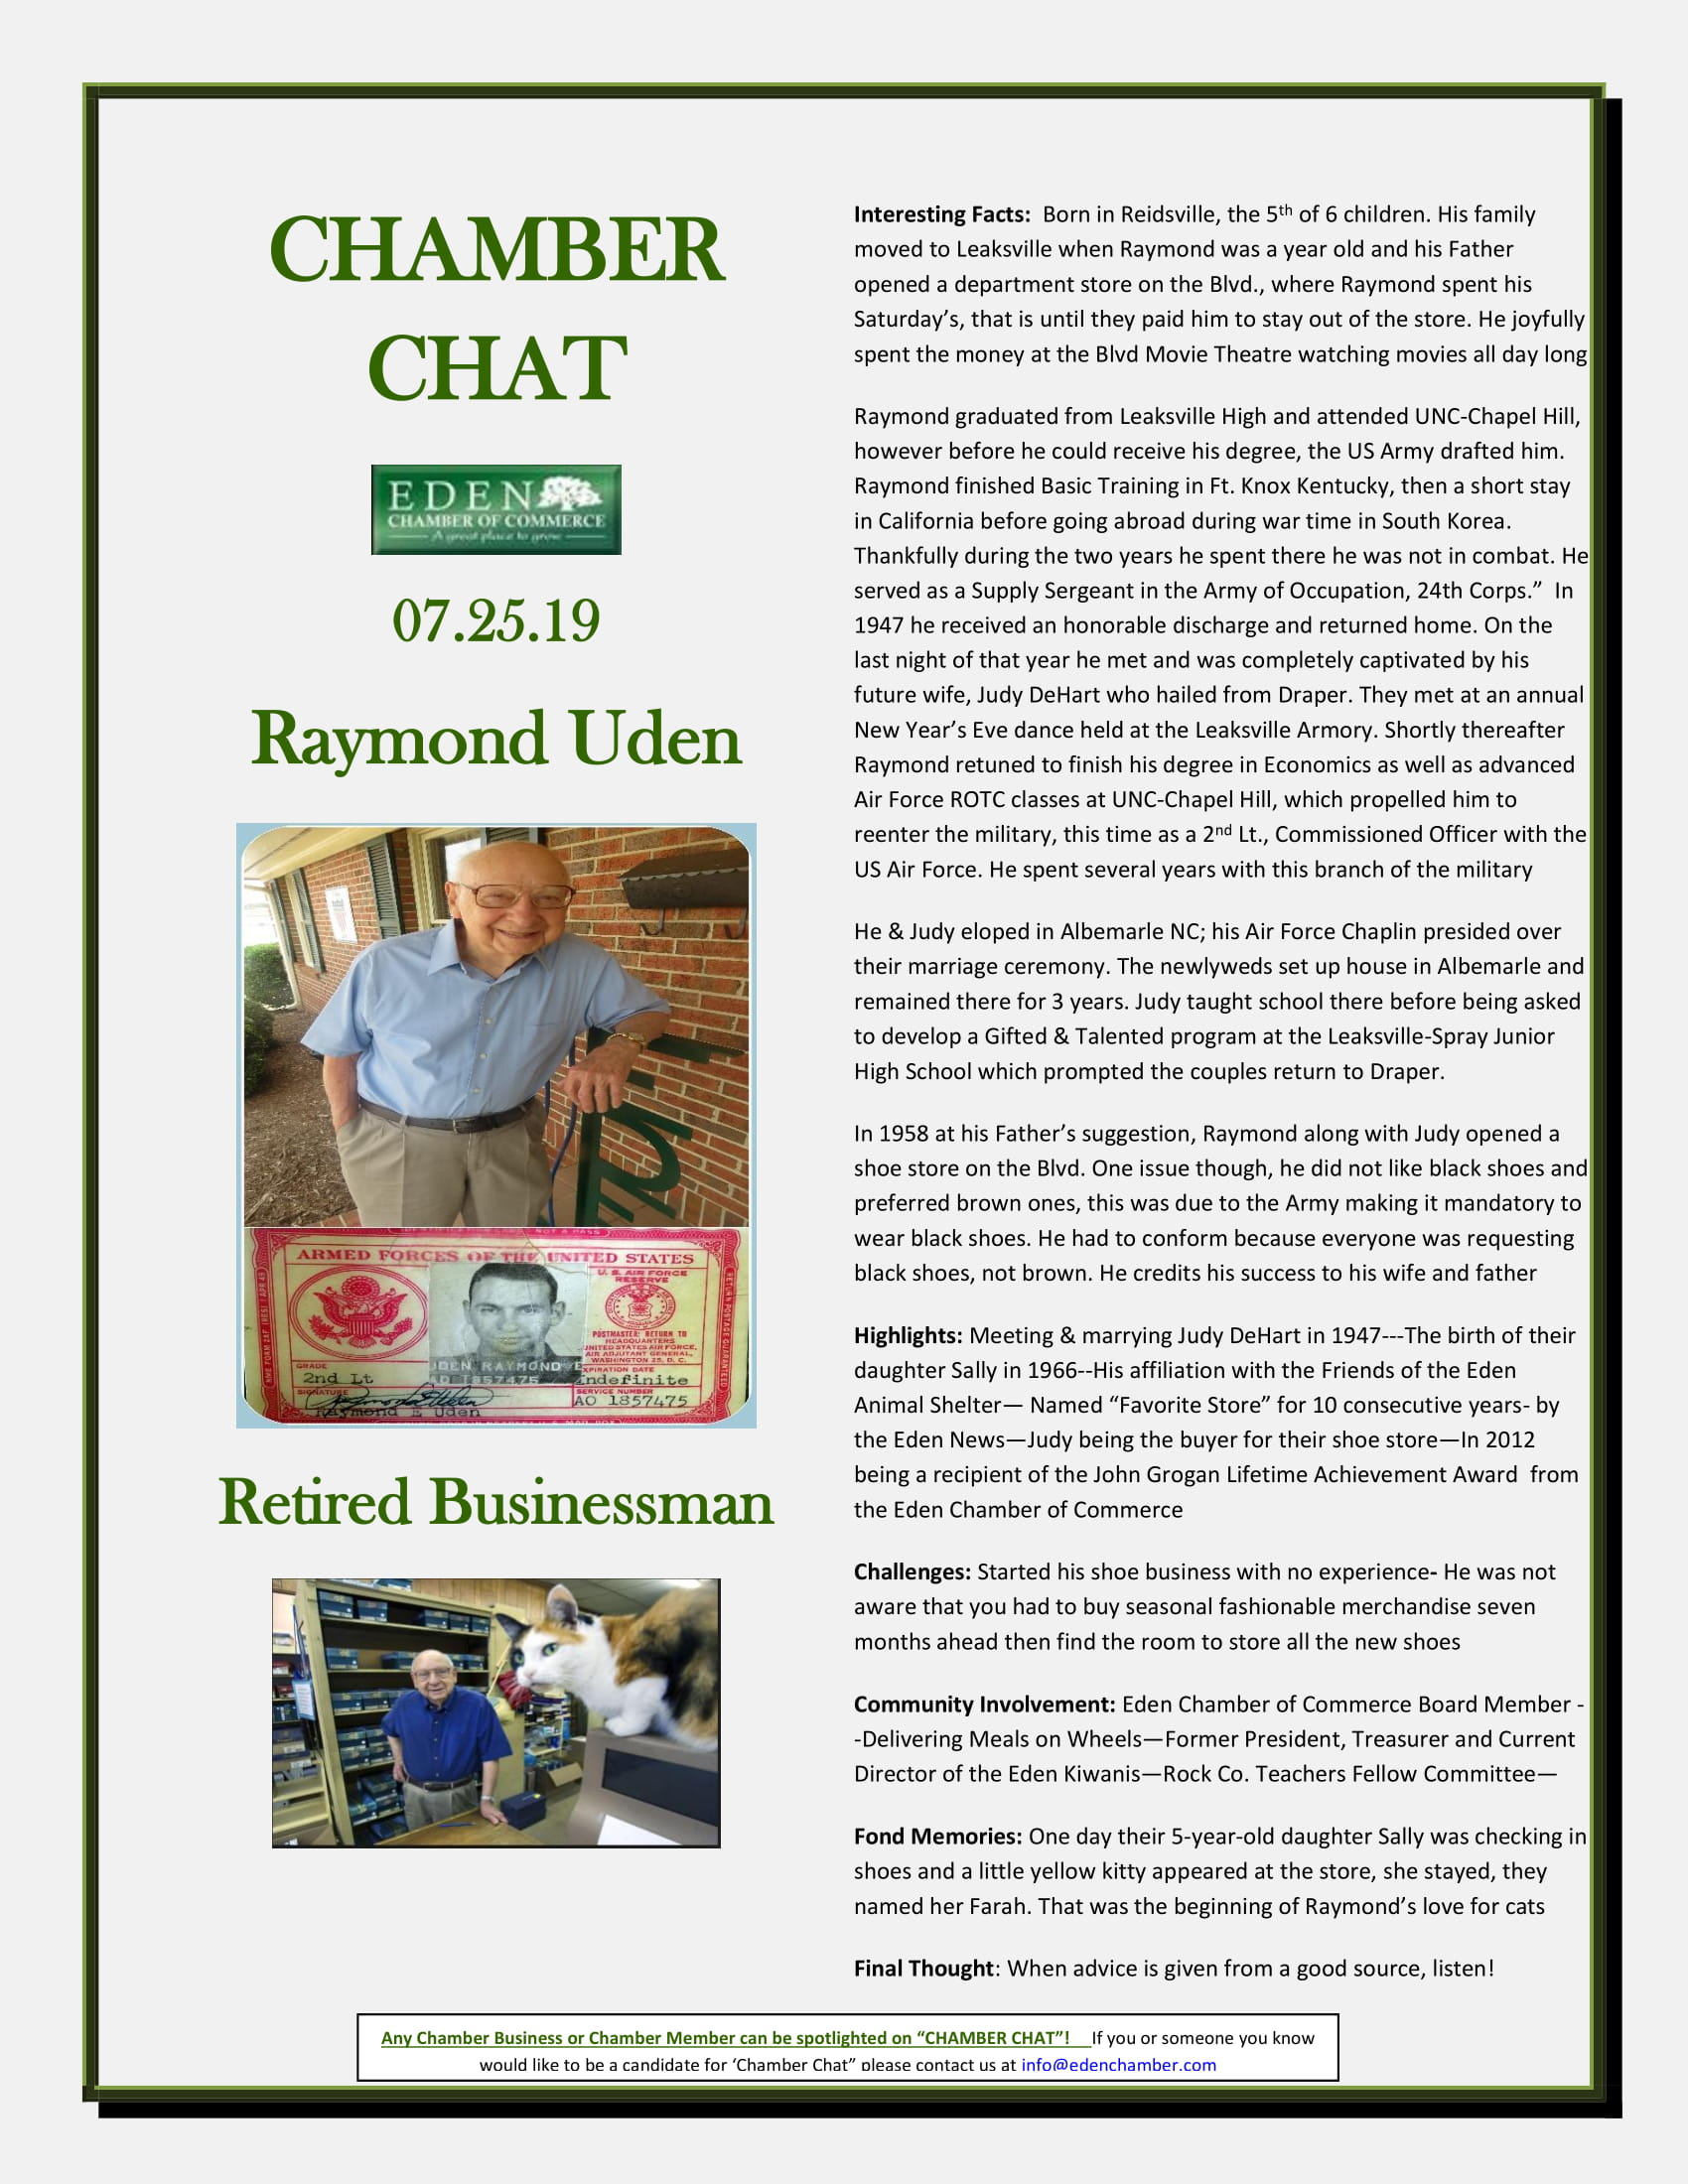 CHAMBER-CHAT-Raymond-Uden.-Eden-Retired-Businessman-1